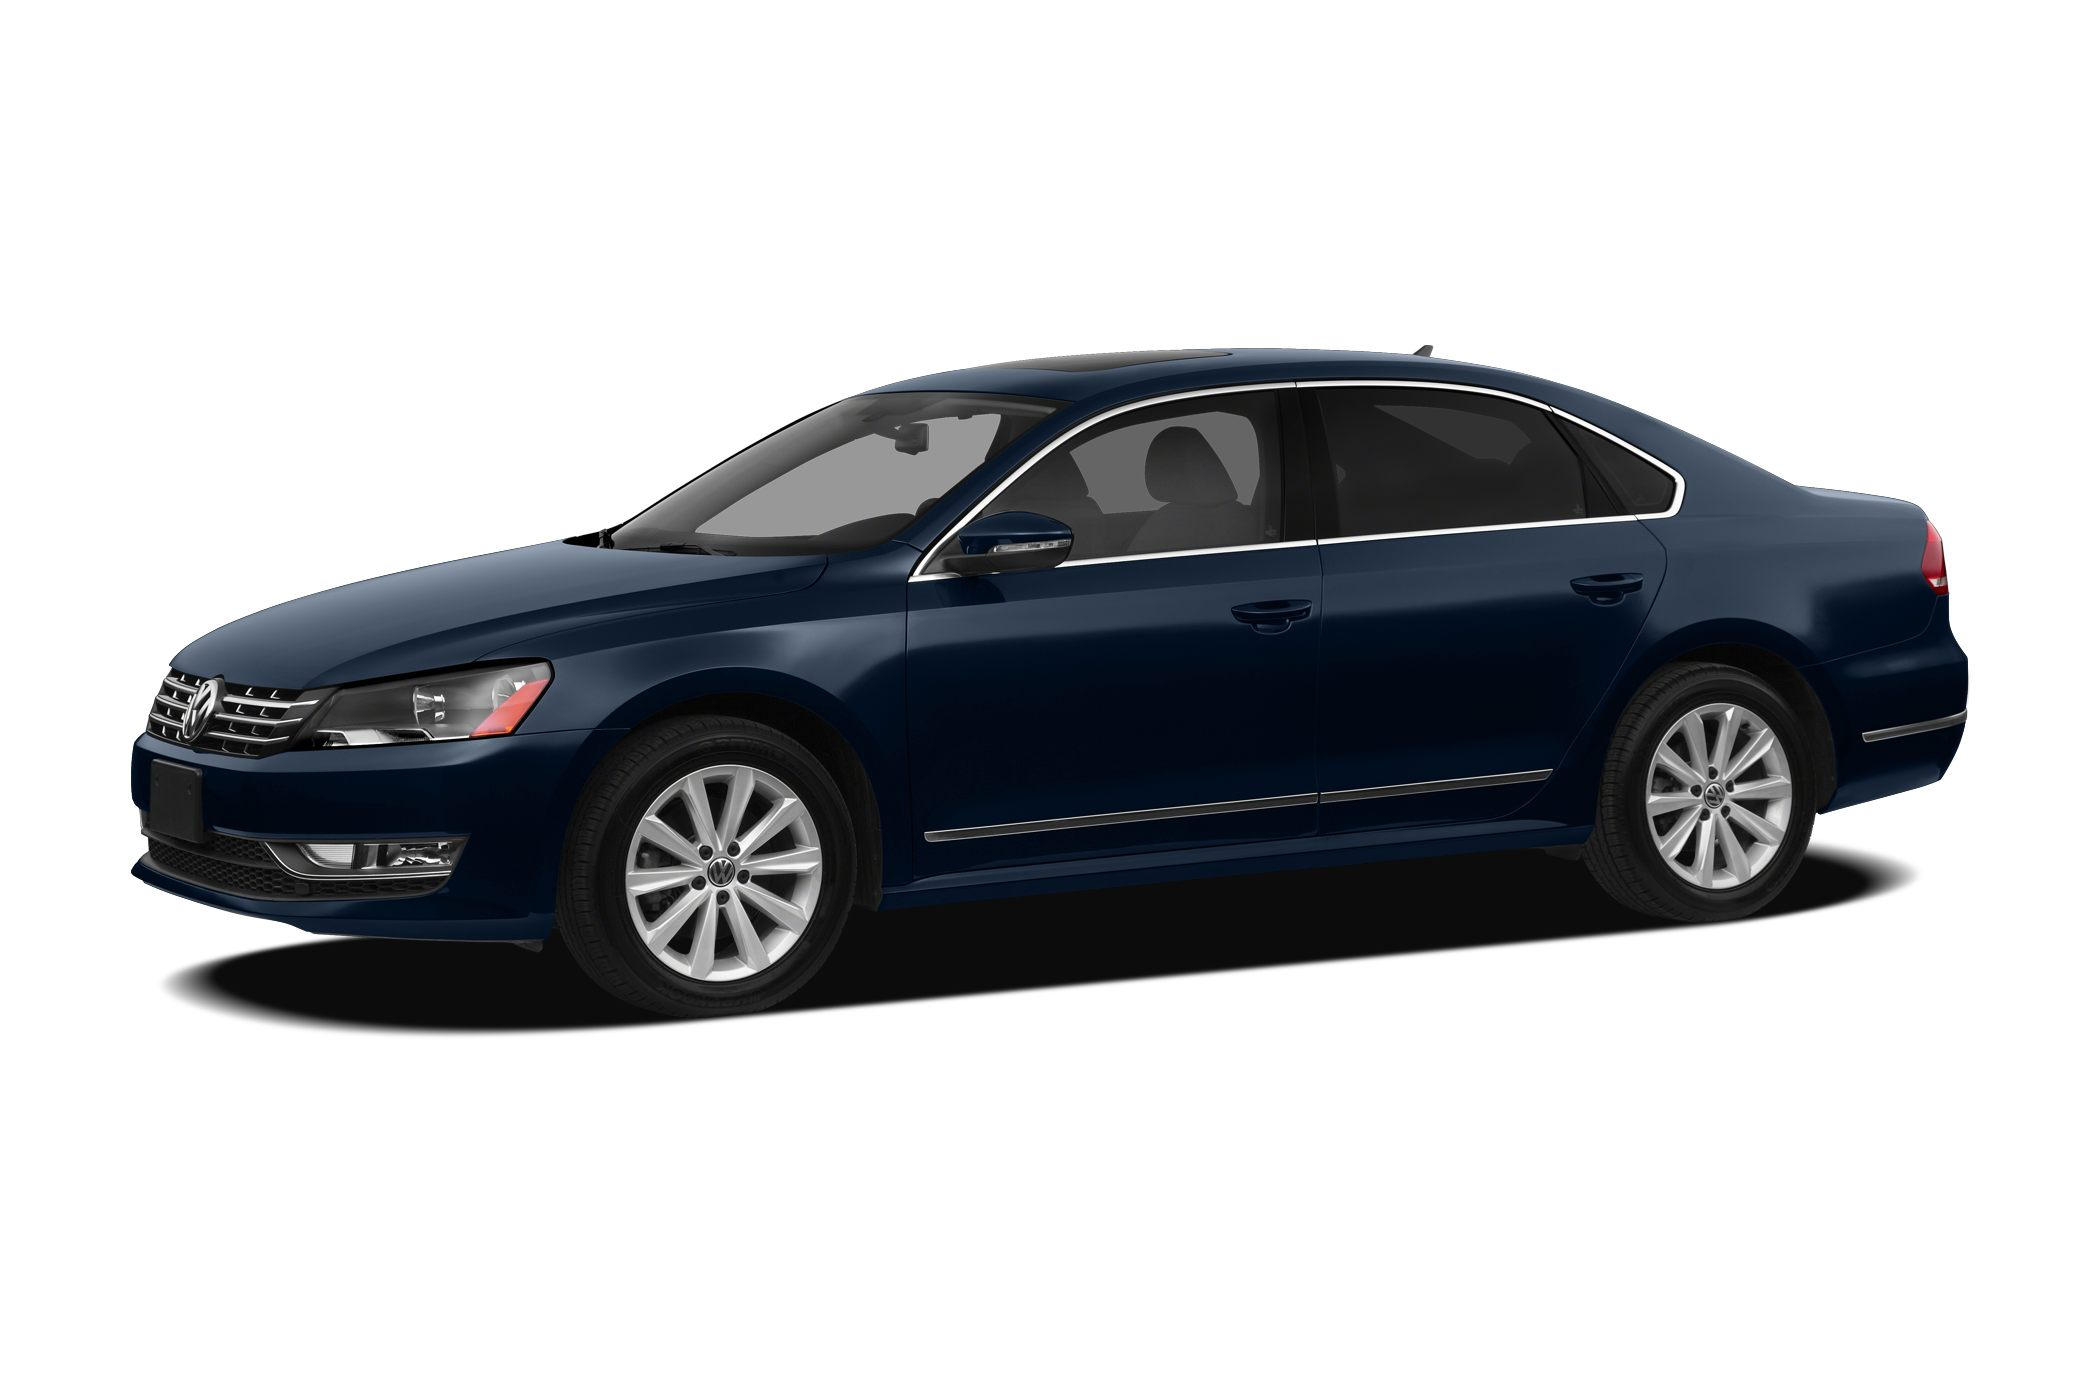 2012 Volkswagen Passat 2.5 S Sedan for sale in Hermiston for $0 with 56,323 miles